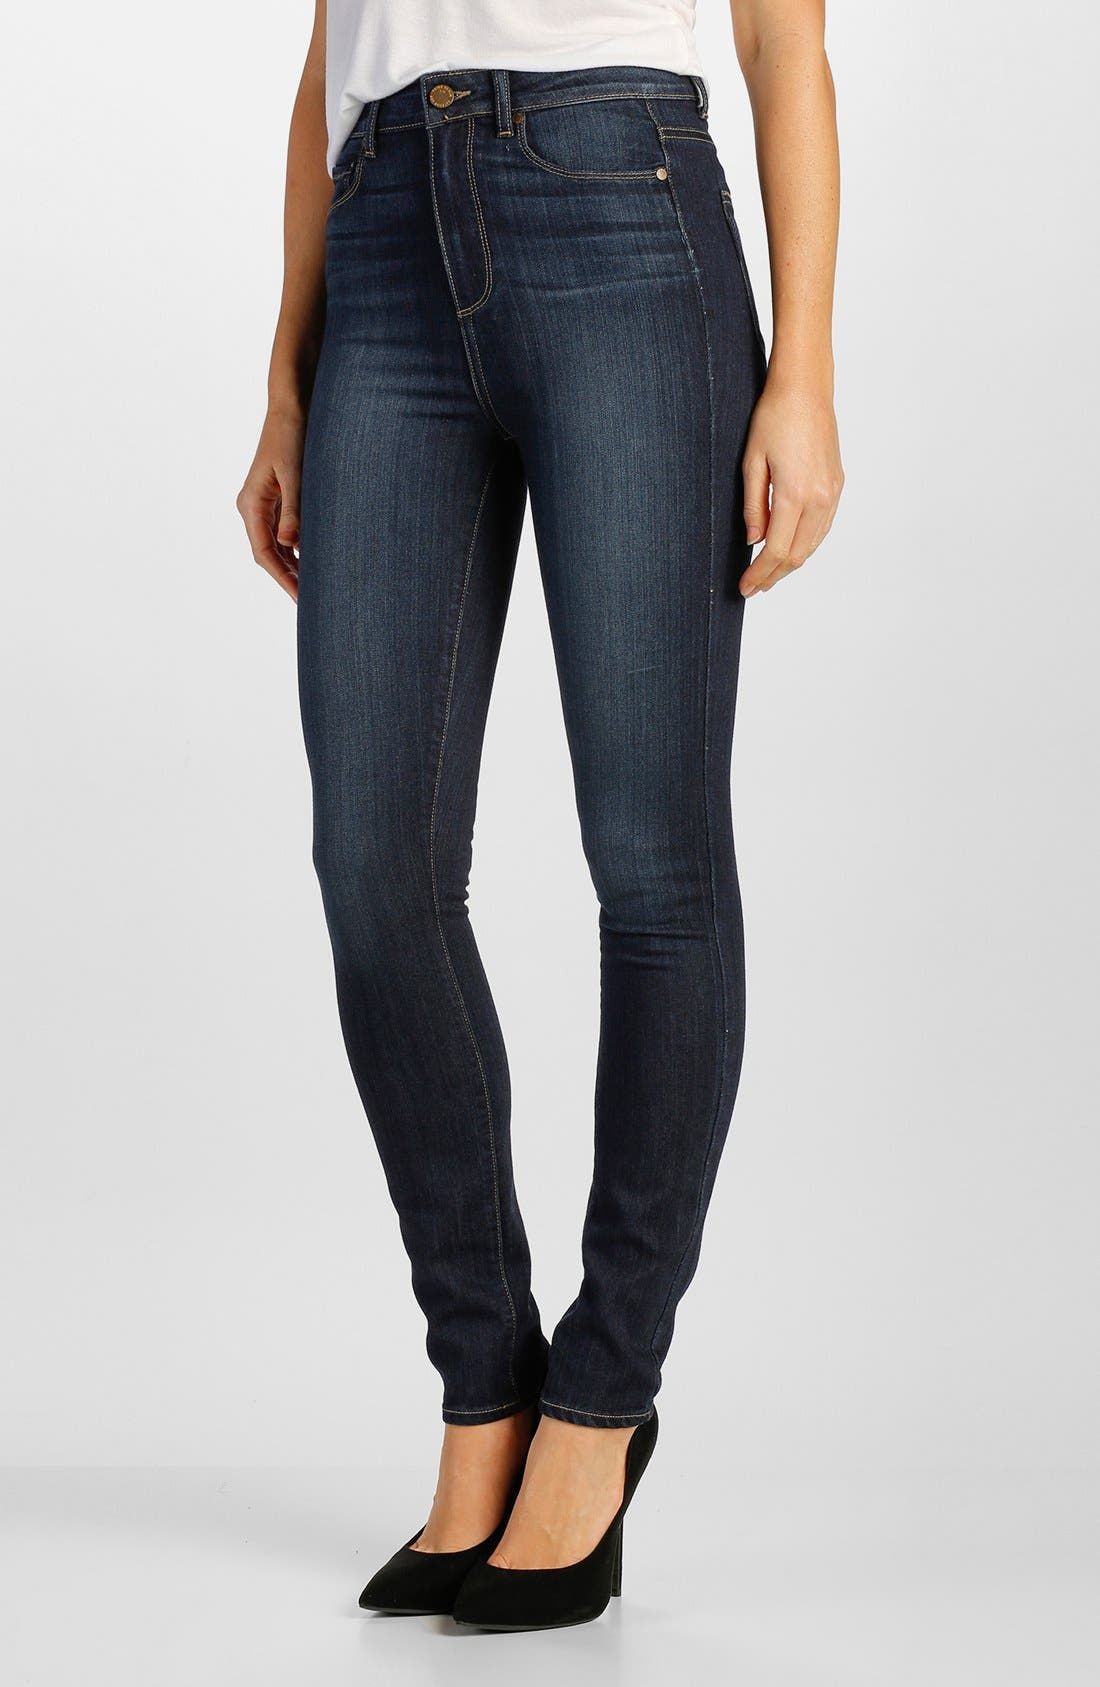 Main Image - Paige Denim 'Margot' High Rise Ultra Skinny Jeans (Alanis)